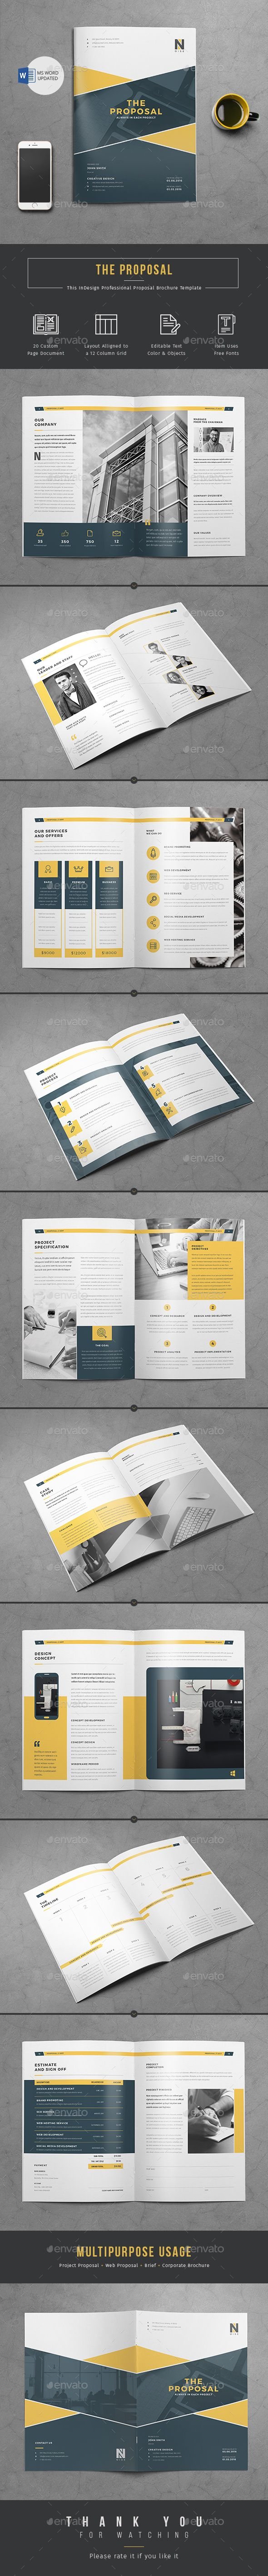 Company project #proposal template for those who wants to make a proposal to perspective client in a short time. This 20 page indesign proposal template has master page and color sawatches that will help you to customize quickly. Go for this professional look proposal template you will definitely save your money as well as time. For easy and quick editing you will have MS Word version for #Free with this modern proposal Brochure.